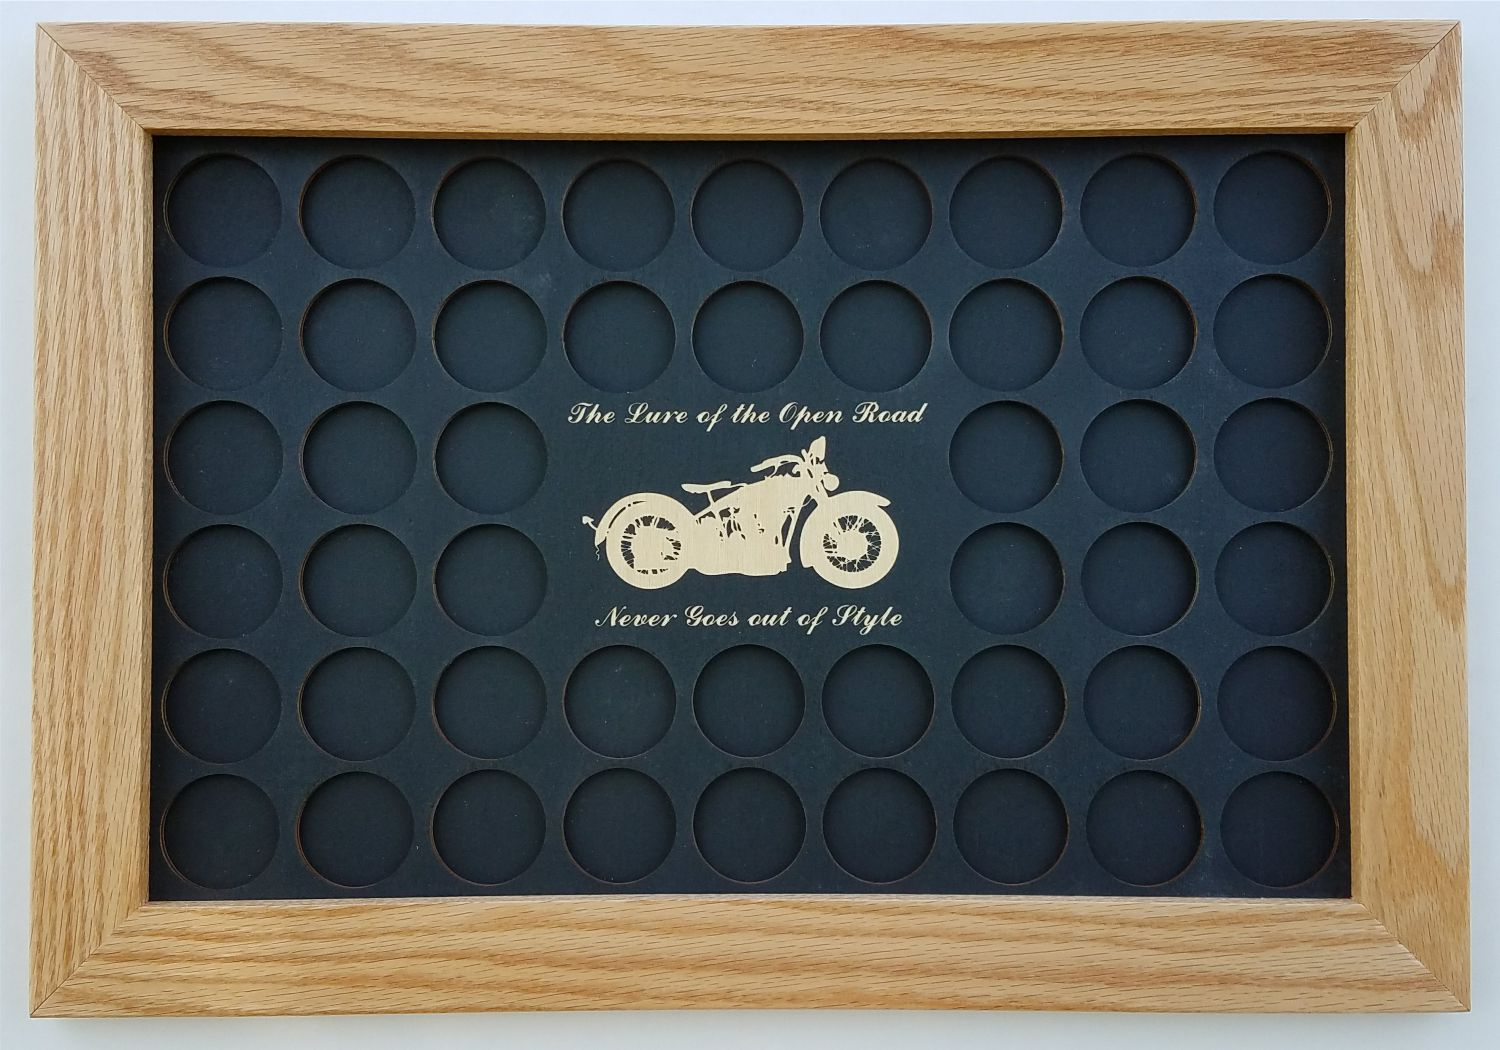 Black Lure Of The Open Road 11x17 Poker Chip Mat Frame